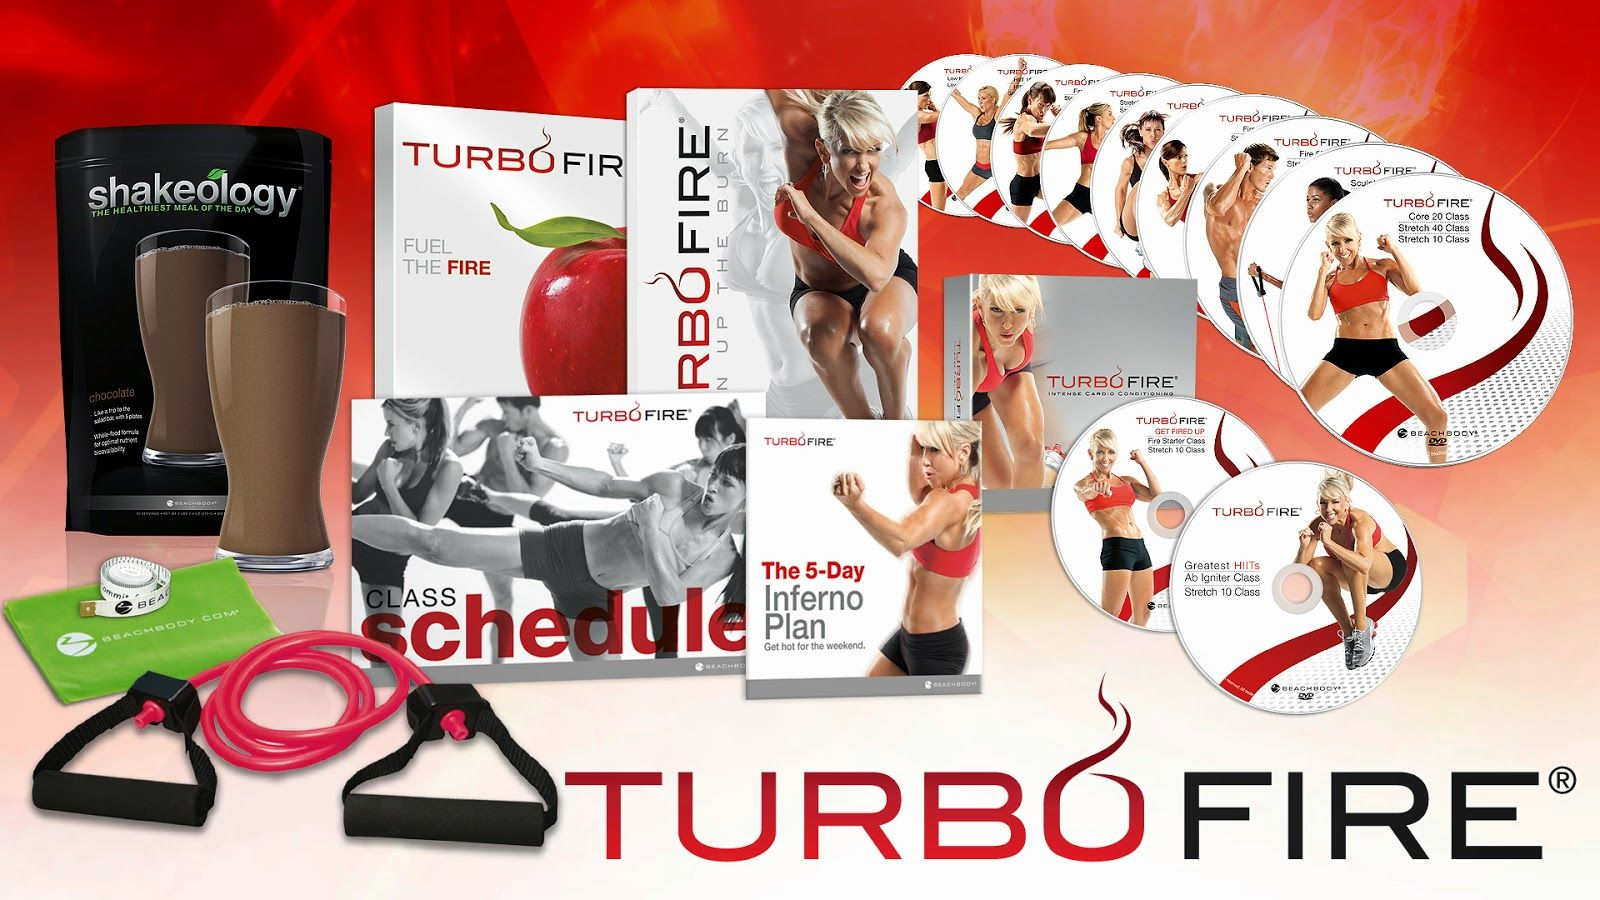 TurboFire at home workout program is super fun and uses HIIT and cardio